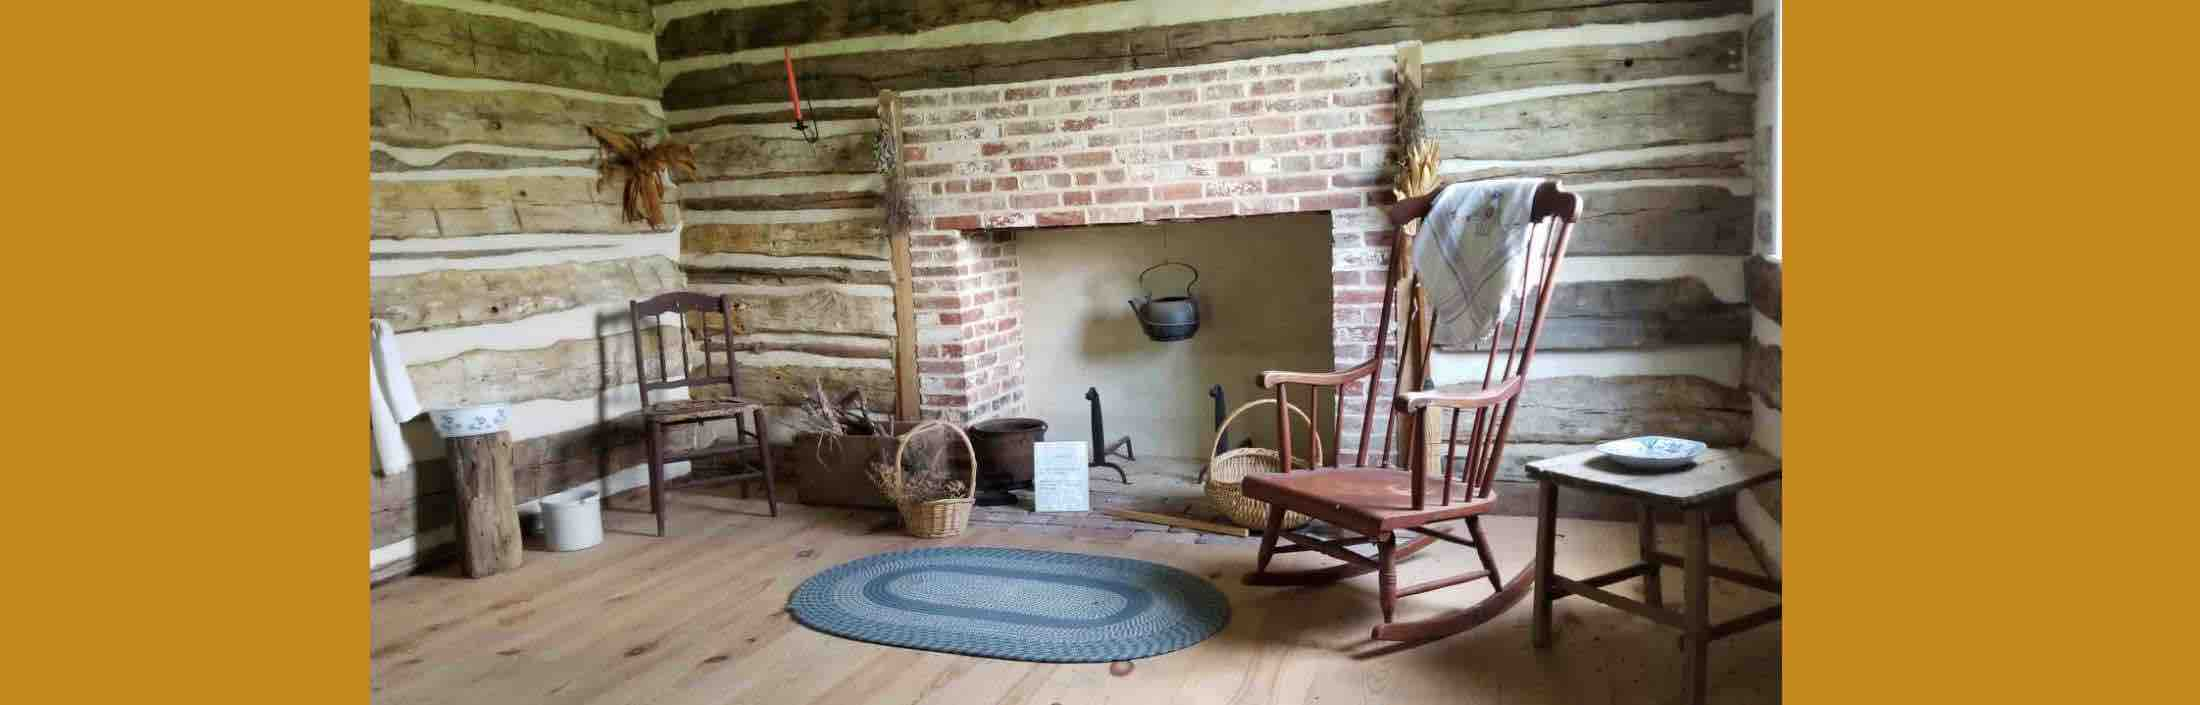 TUBMAN TRAVELS: The Webb Cabin